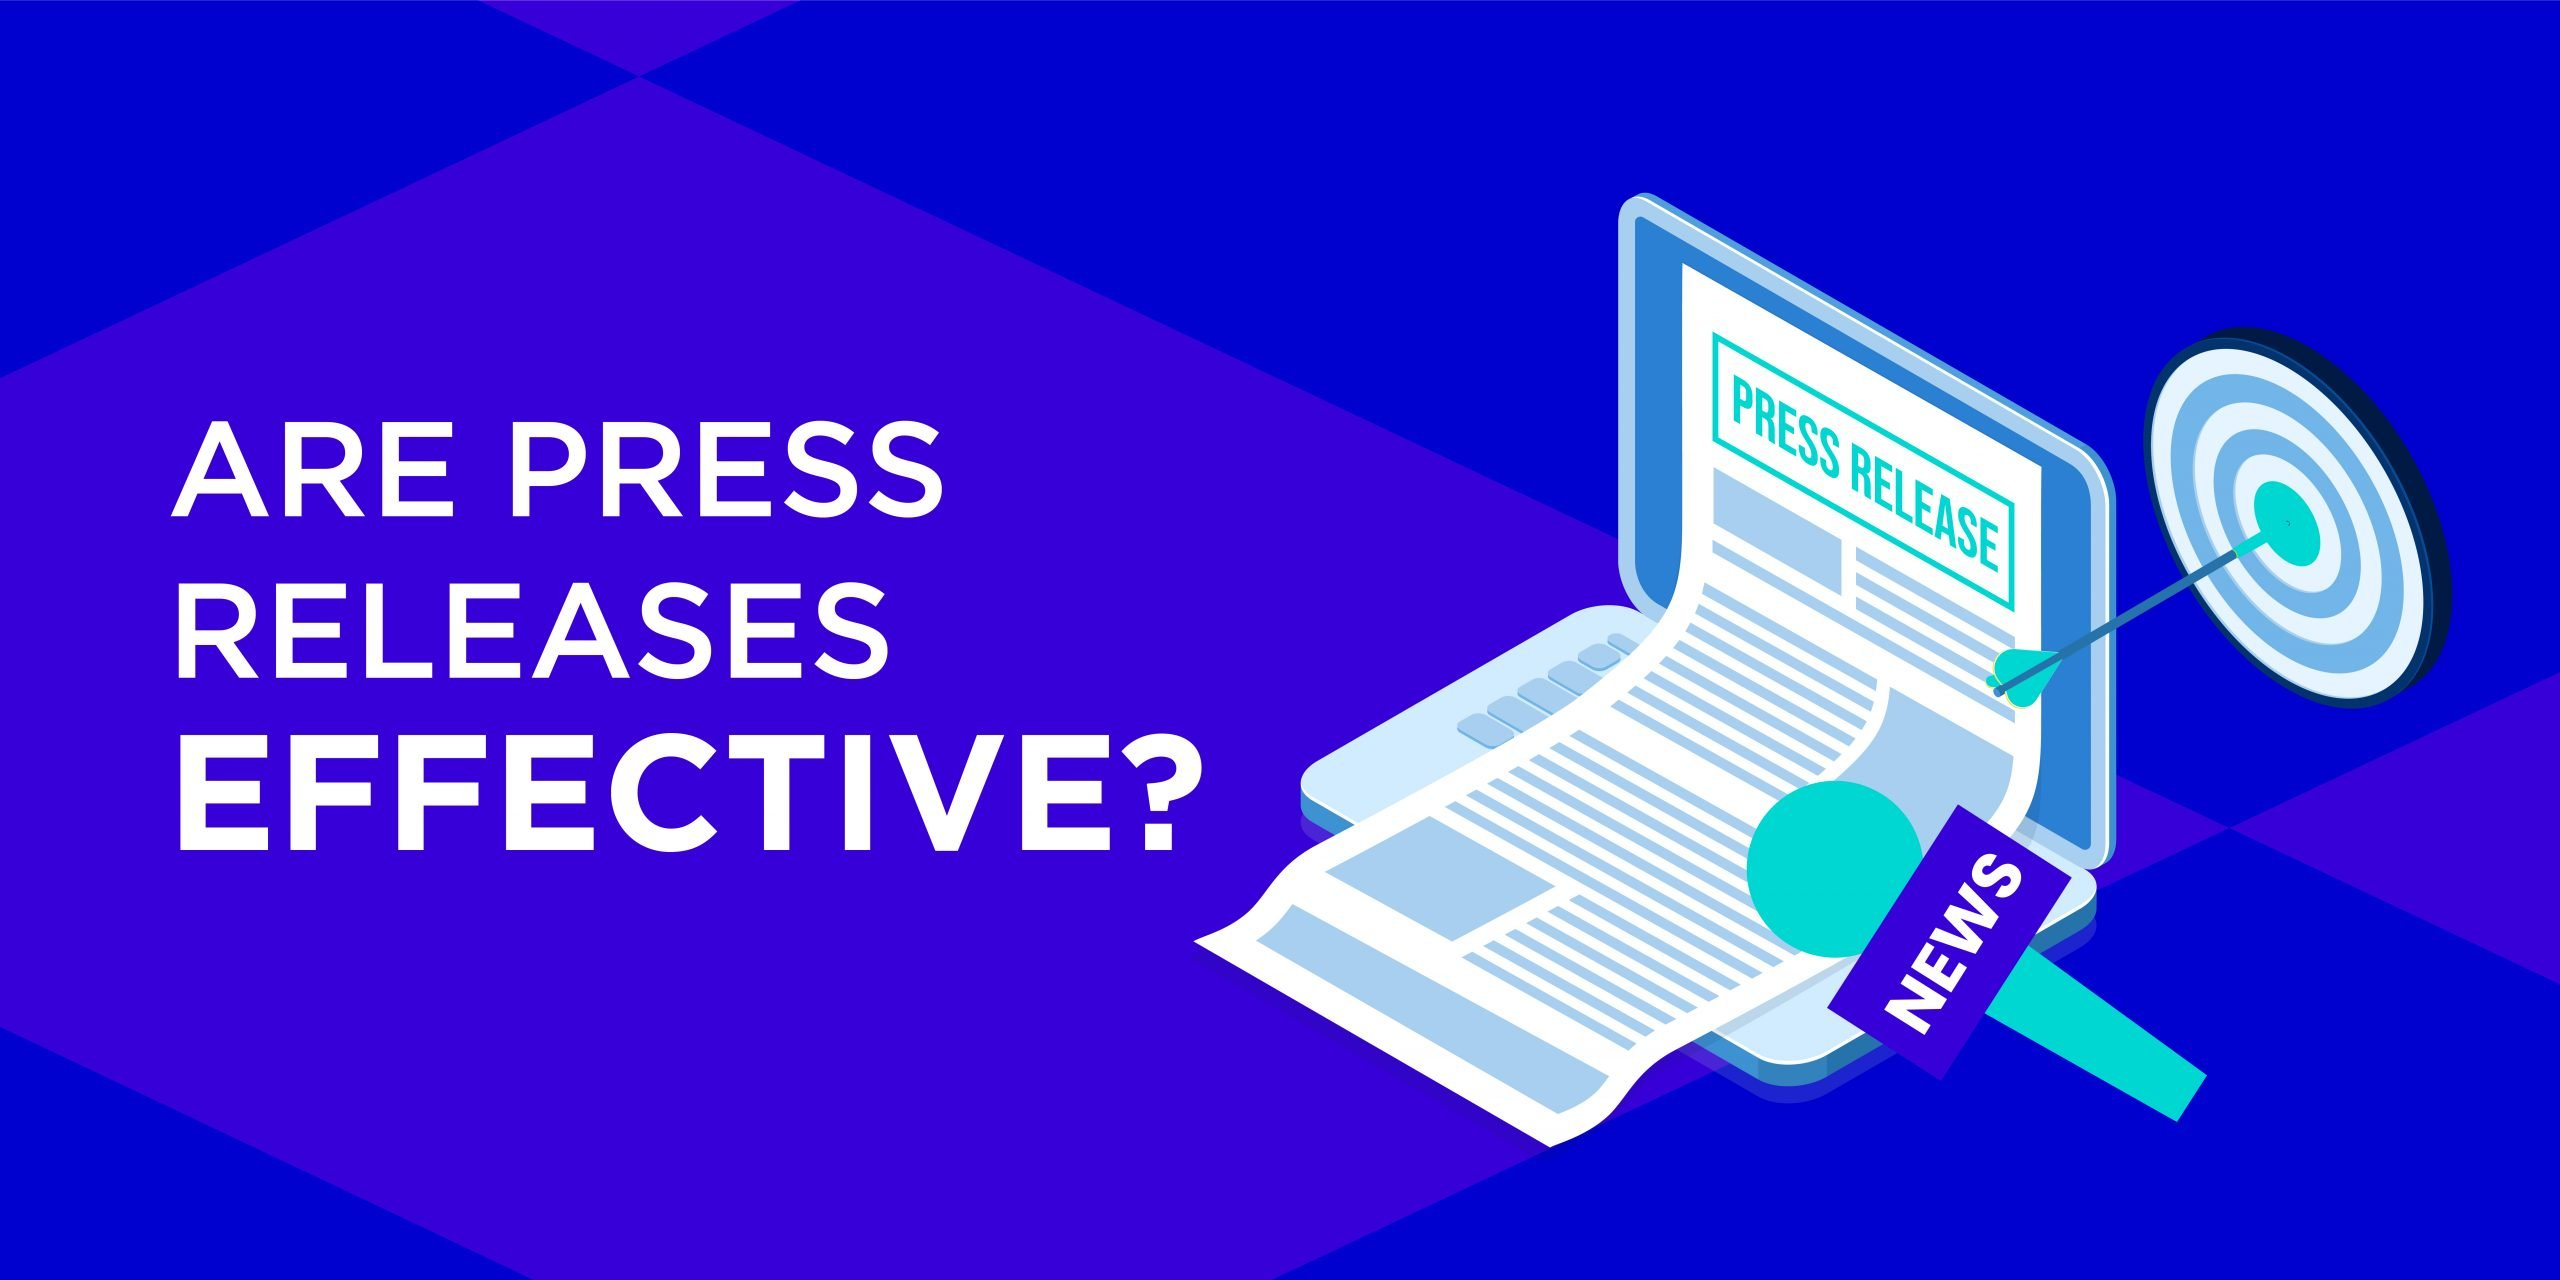 Are Press Releases Effective?